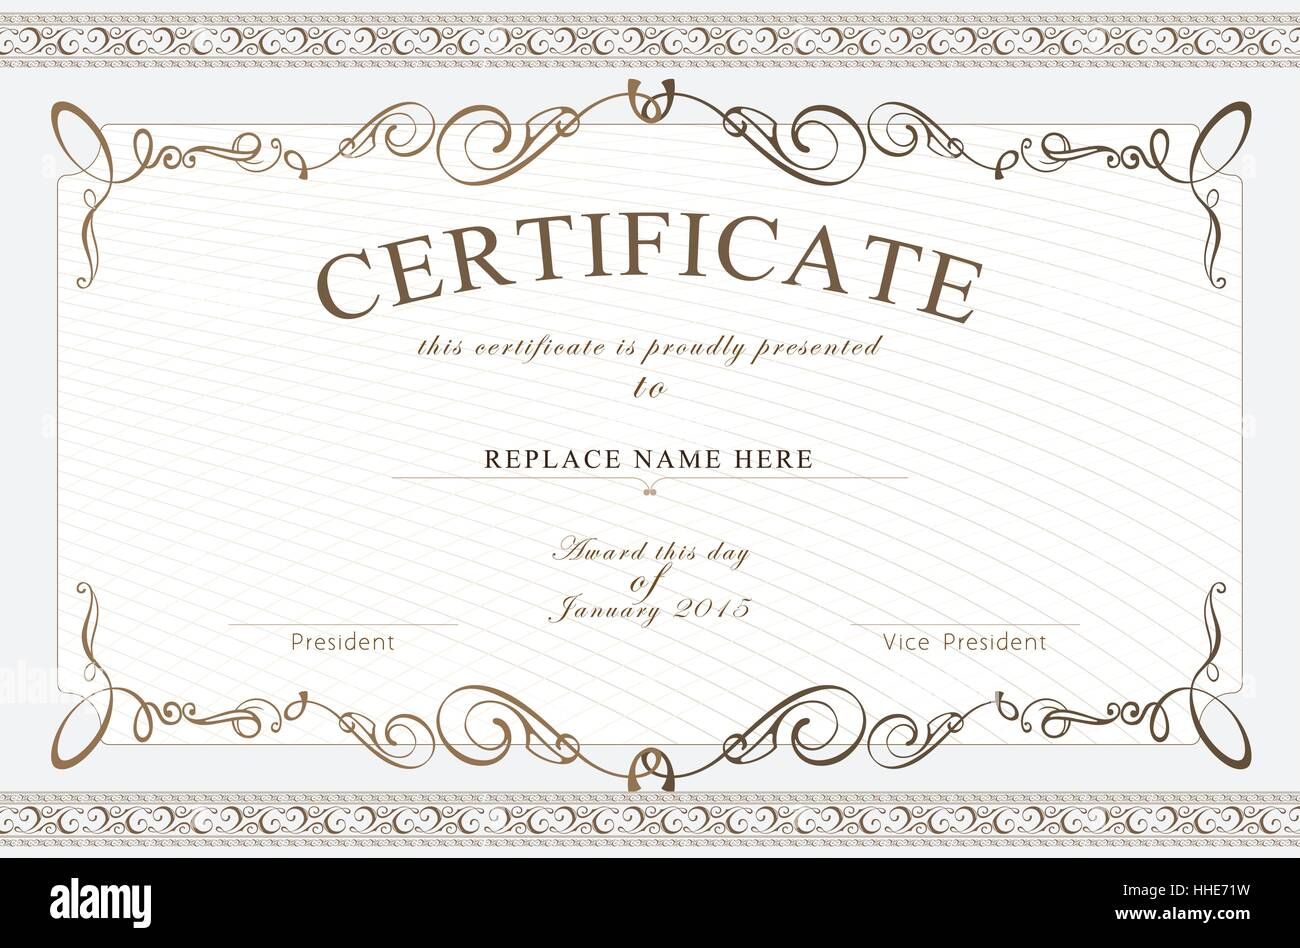 Certificate Border Certificate Template Vector Illustration Stock